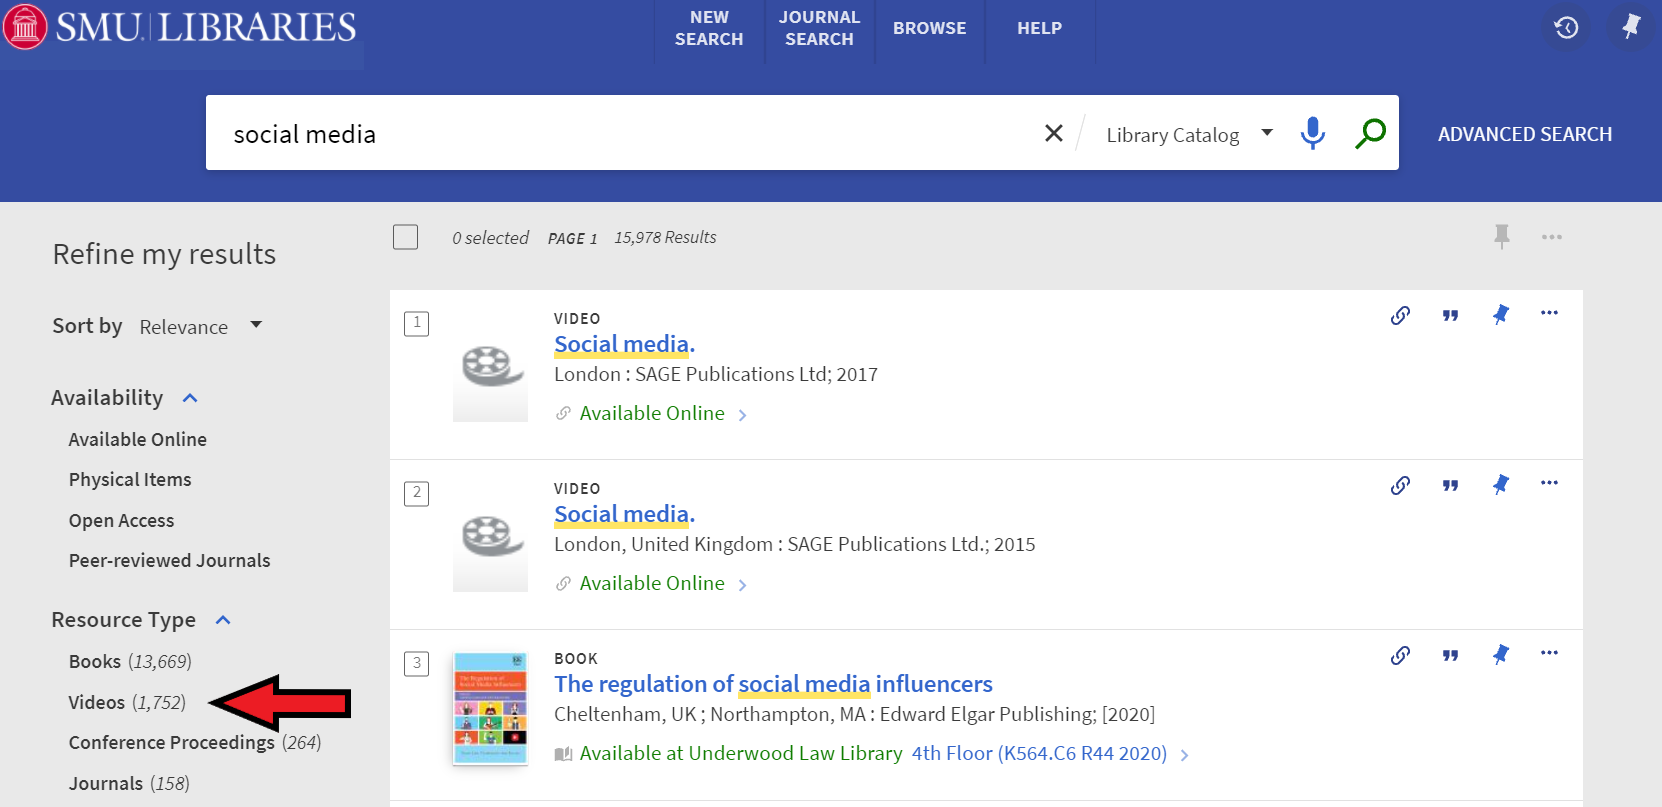 screenshot of a search for social media with an arrow pointing to the resource type of videos